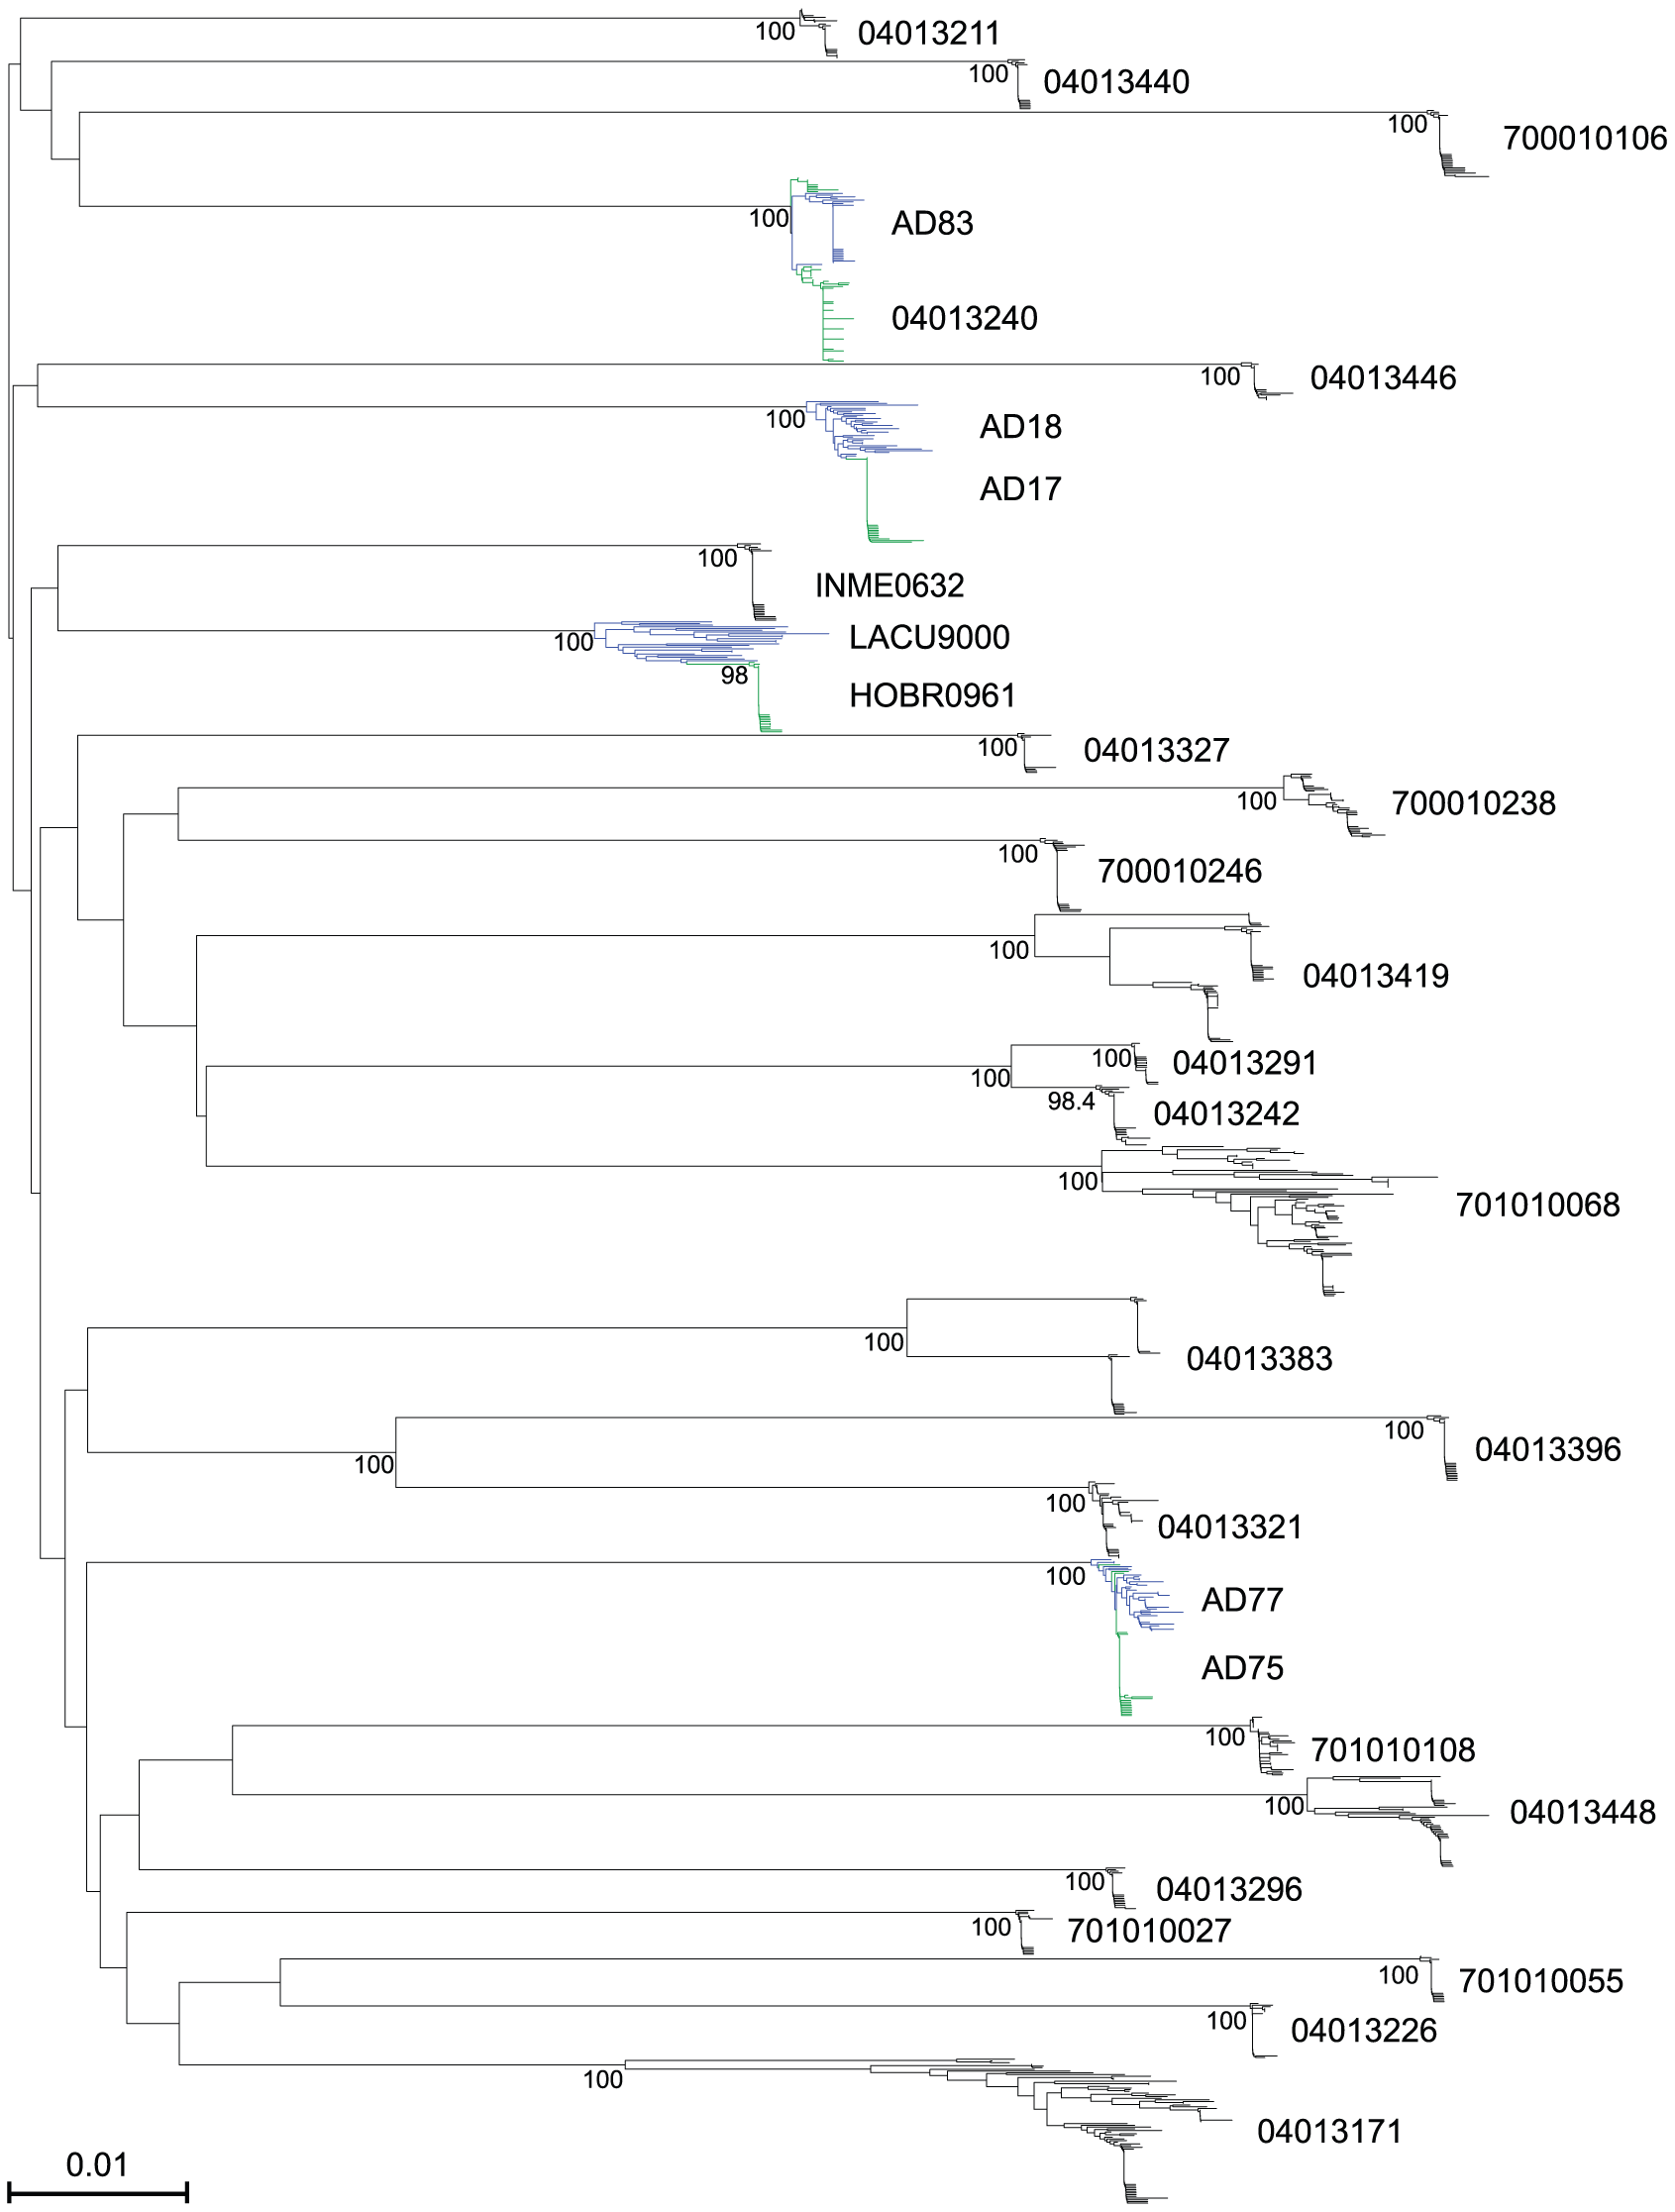 Neighbor-joining (NJ) tree of full-length HIV-1 gp160 env sequences from 28 acutely infected subjects and 2 chronically infected sexual partners.